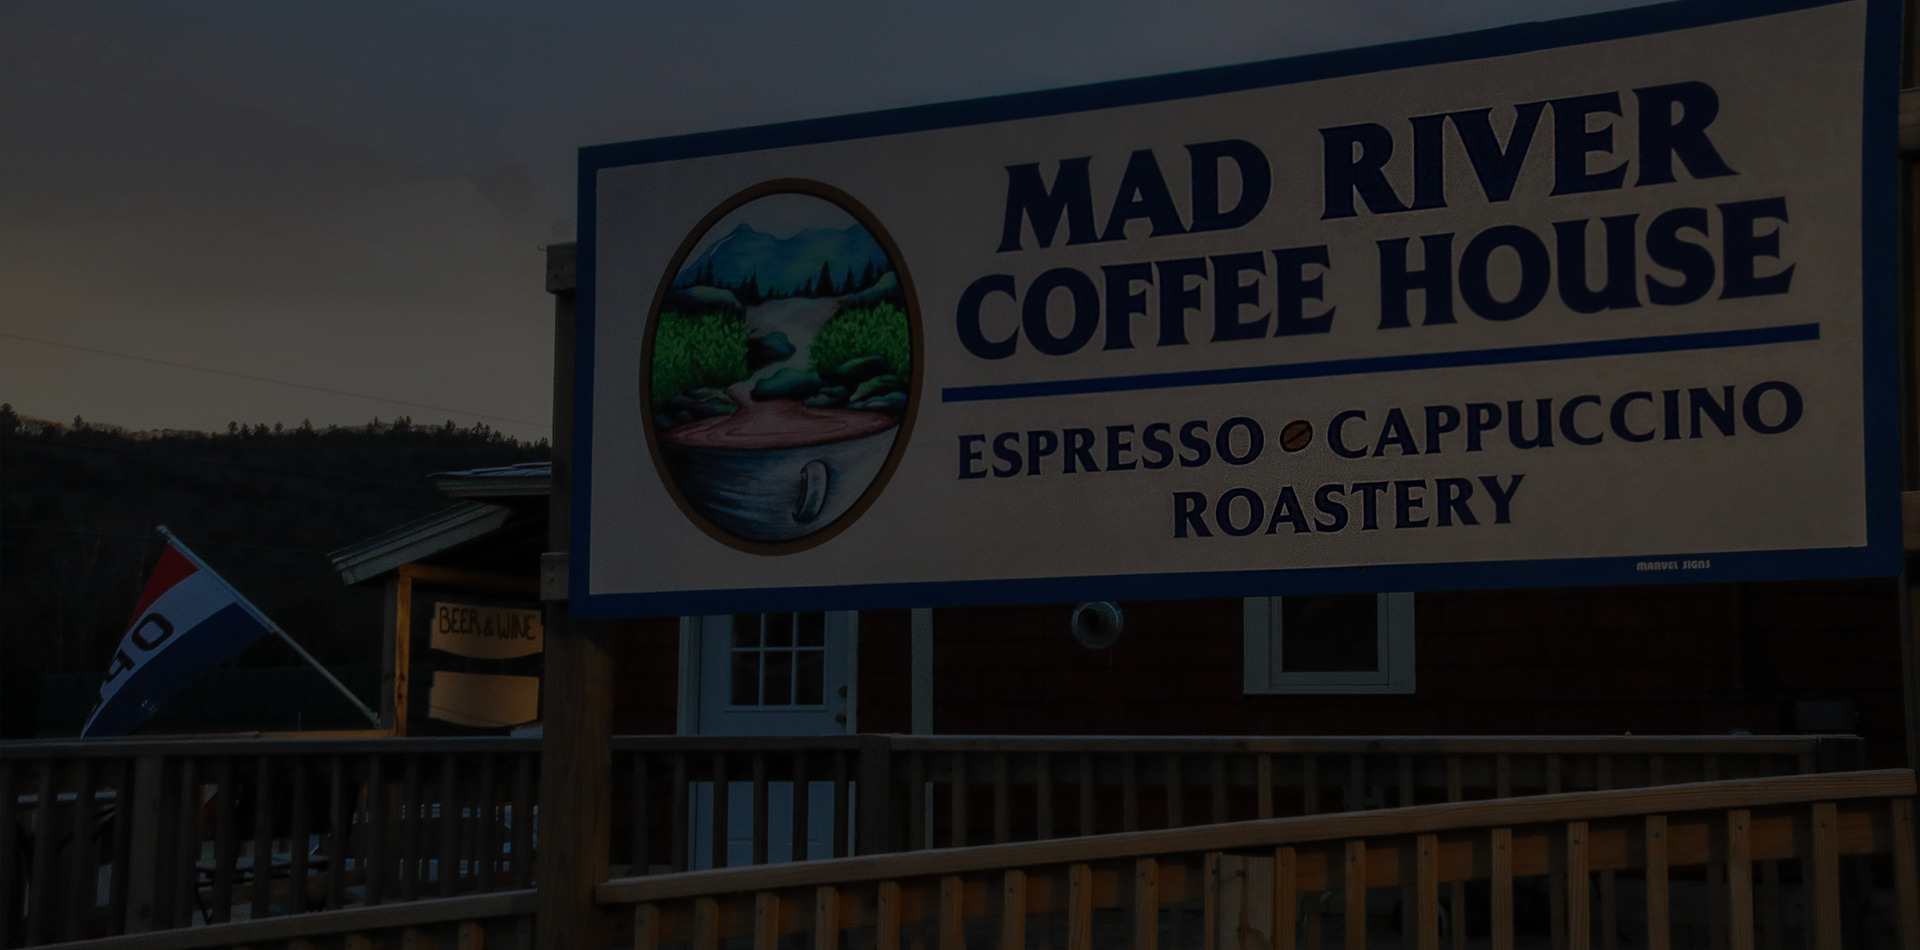 Mad River Coffee Roasters sign